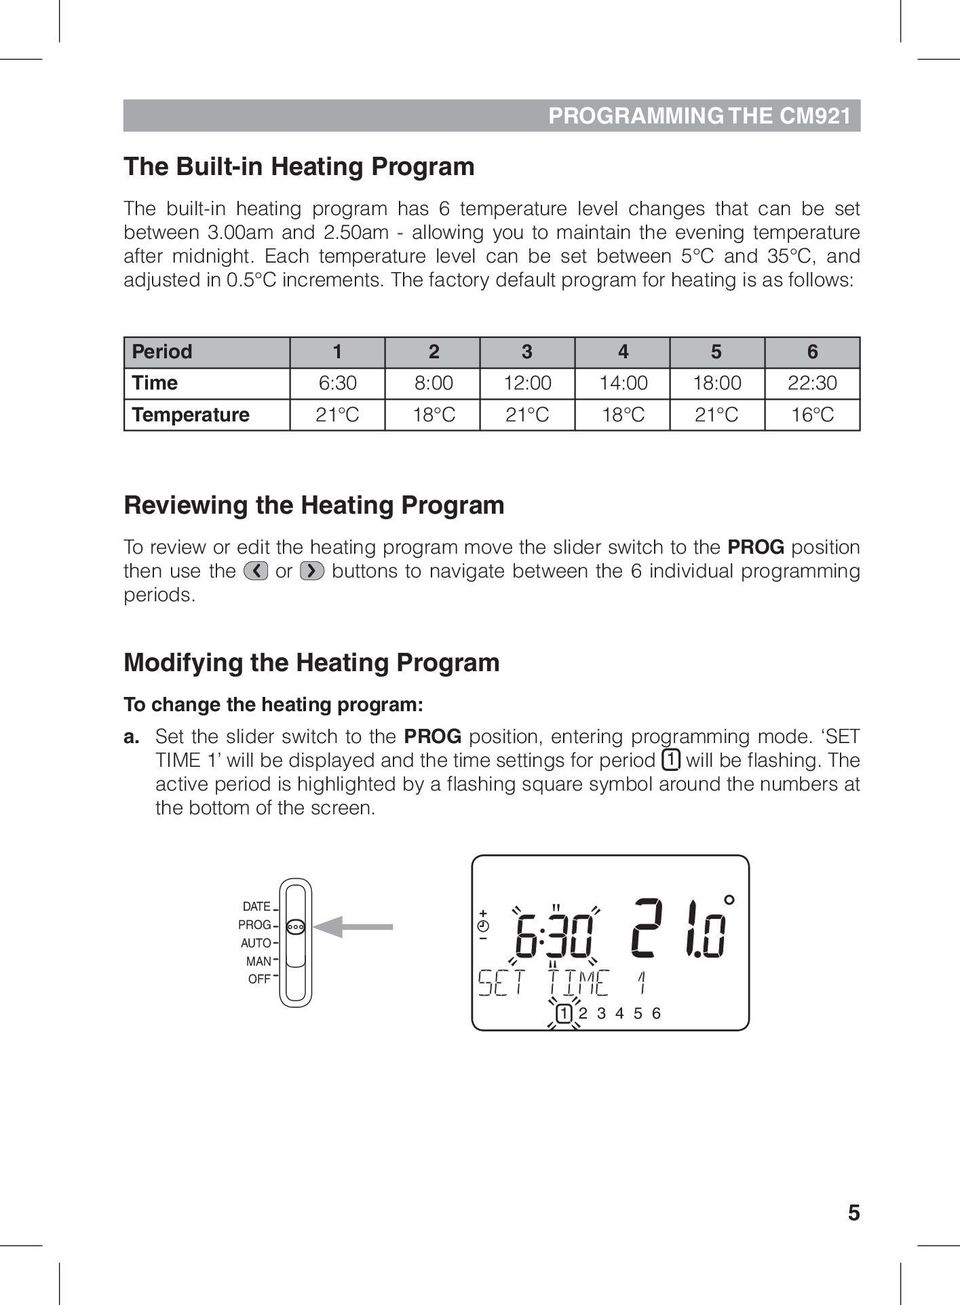 The factory default program for heating is as follows: Period 1 2 3 4 5 6 Time 6:30 8:00 12:00 14:00 18:00 22:30 Temperature 21 C 18 C 21 C 18 C 21 C 16 C Reviewing the Heating Program To review or